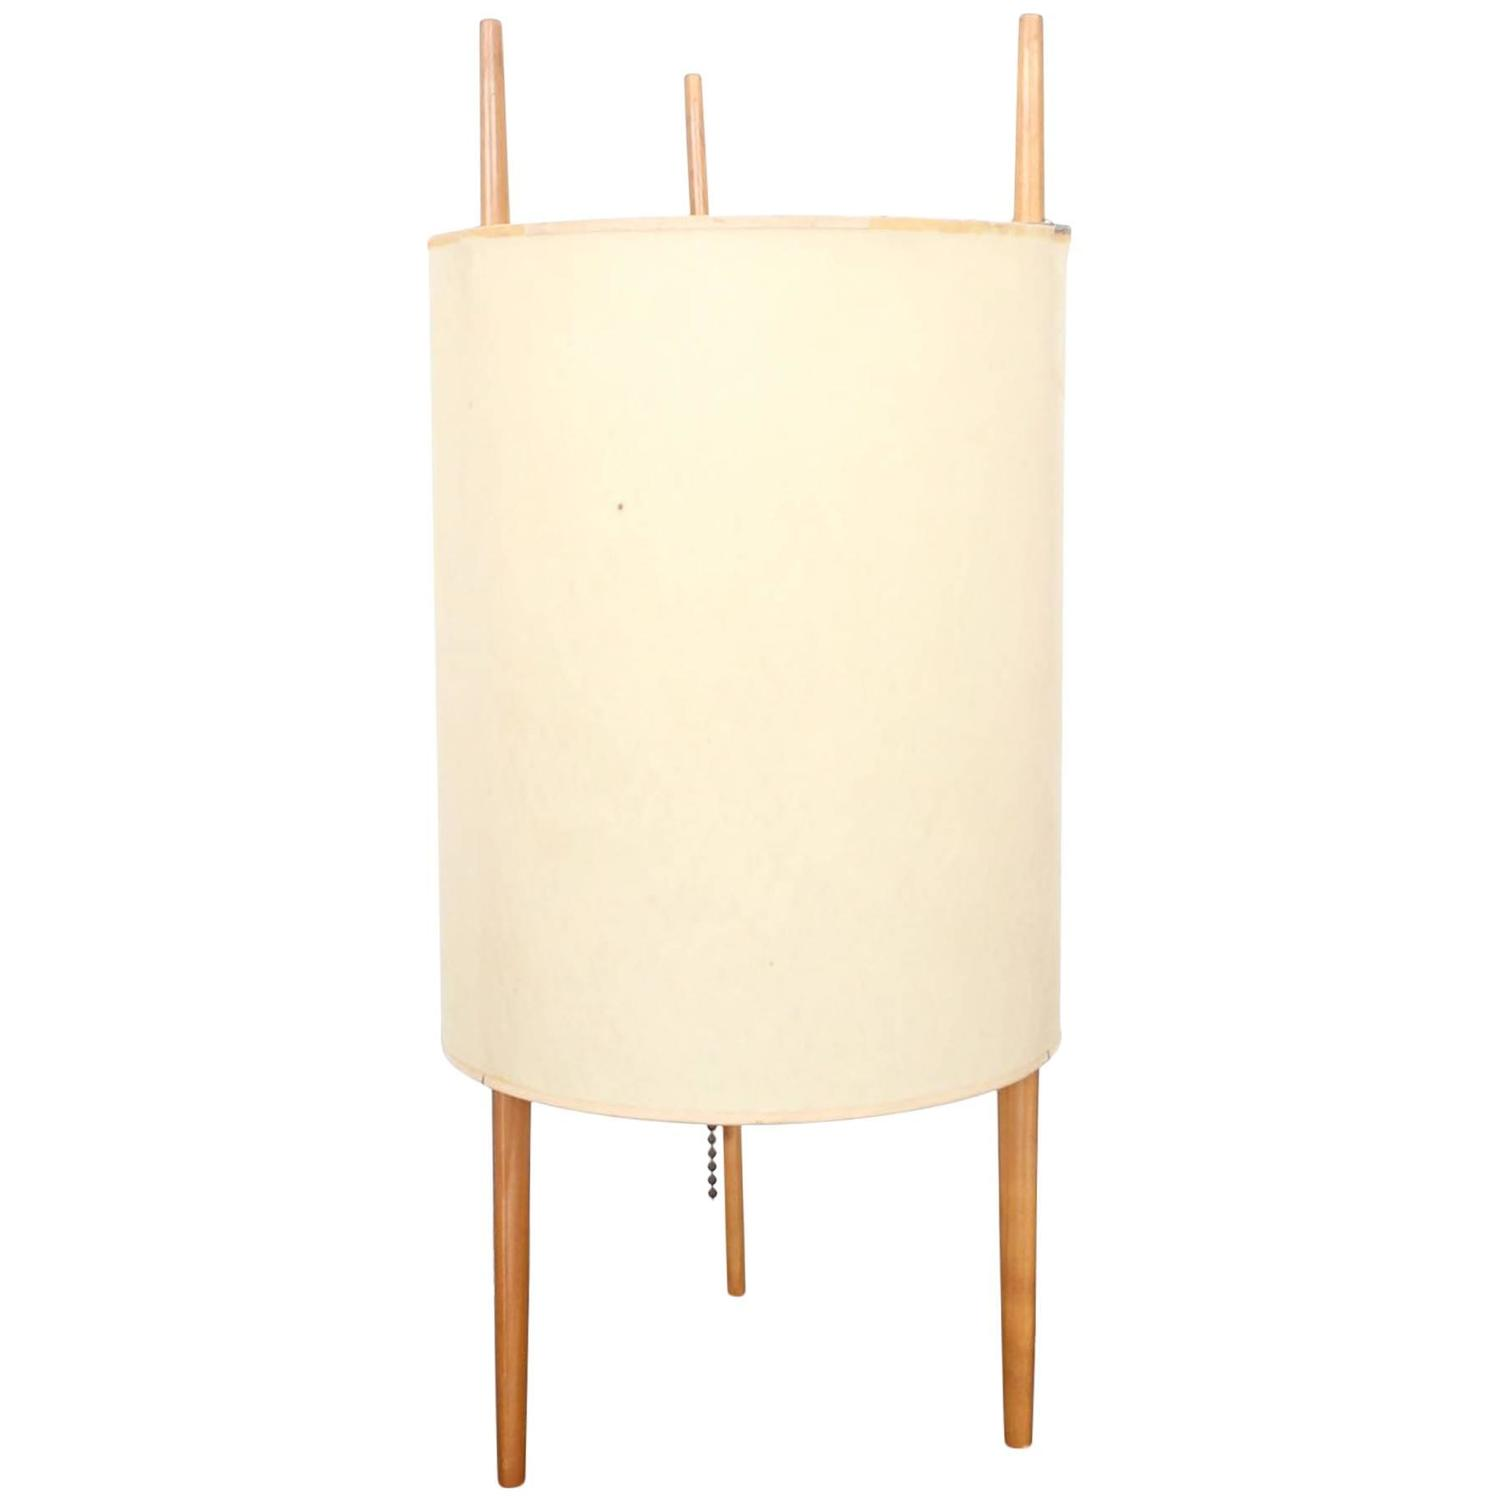 Noguchi Model 9 for Knoll, 1947 Table Lamp For Sale at 1stdibs